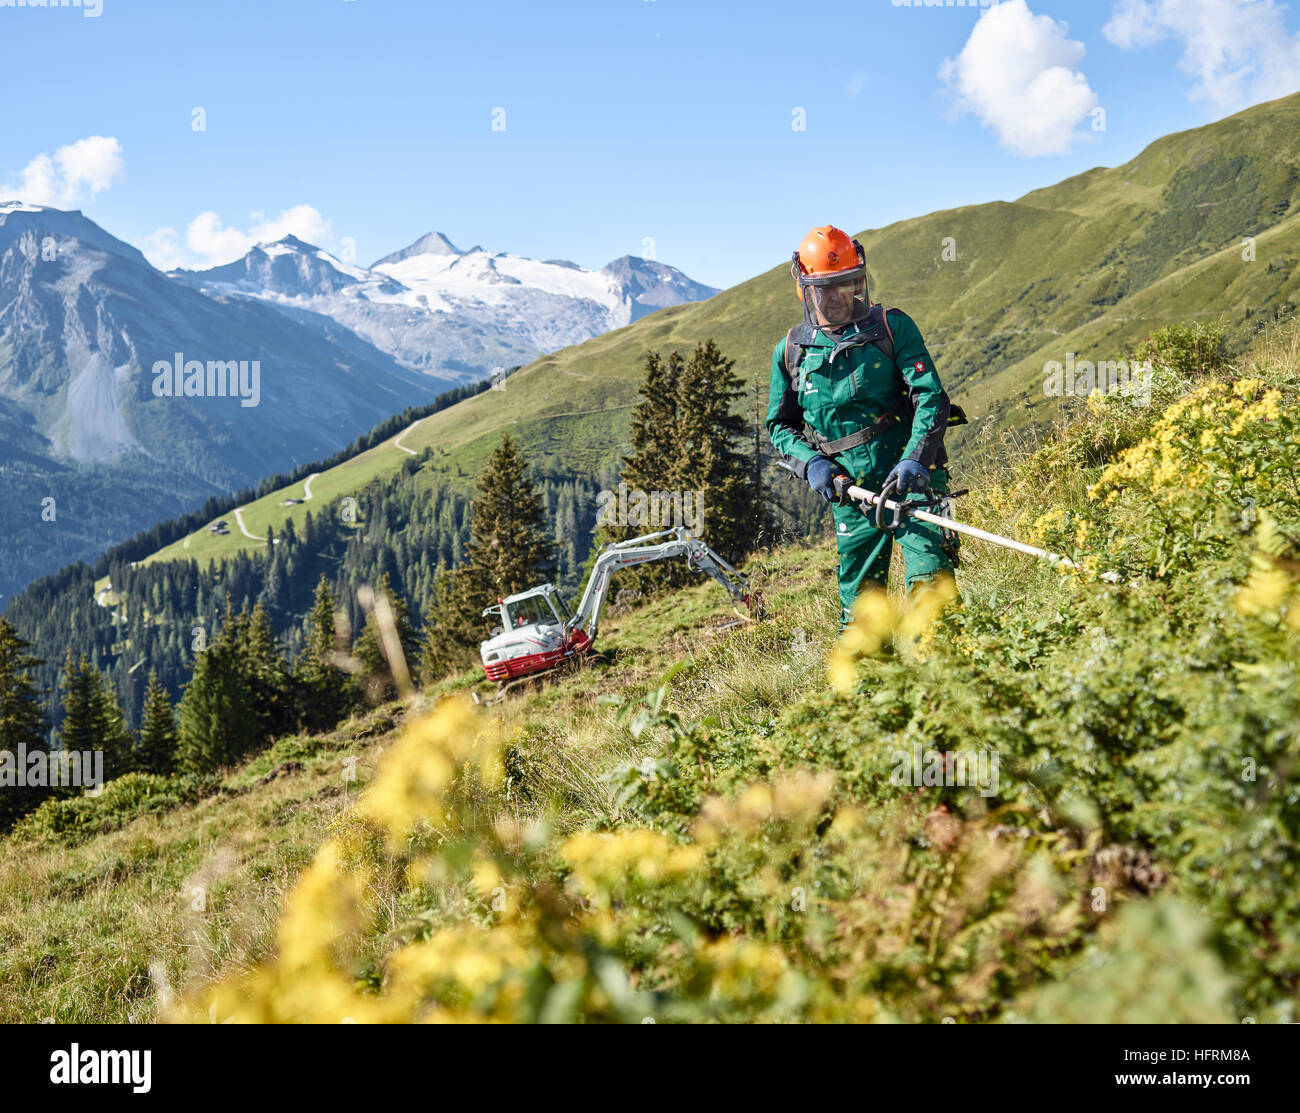 Lumberjack on the pasture, mountain landscape, Alps, Hintertux, Tuxertal, Zillertal, Tyrol, Austria - Stock Image